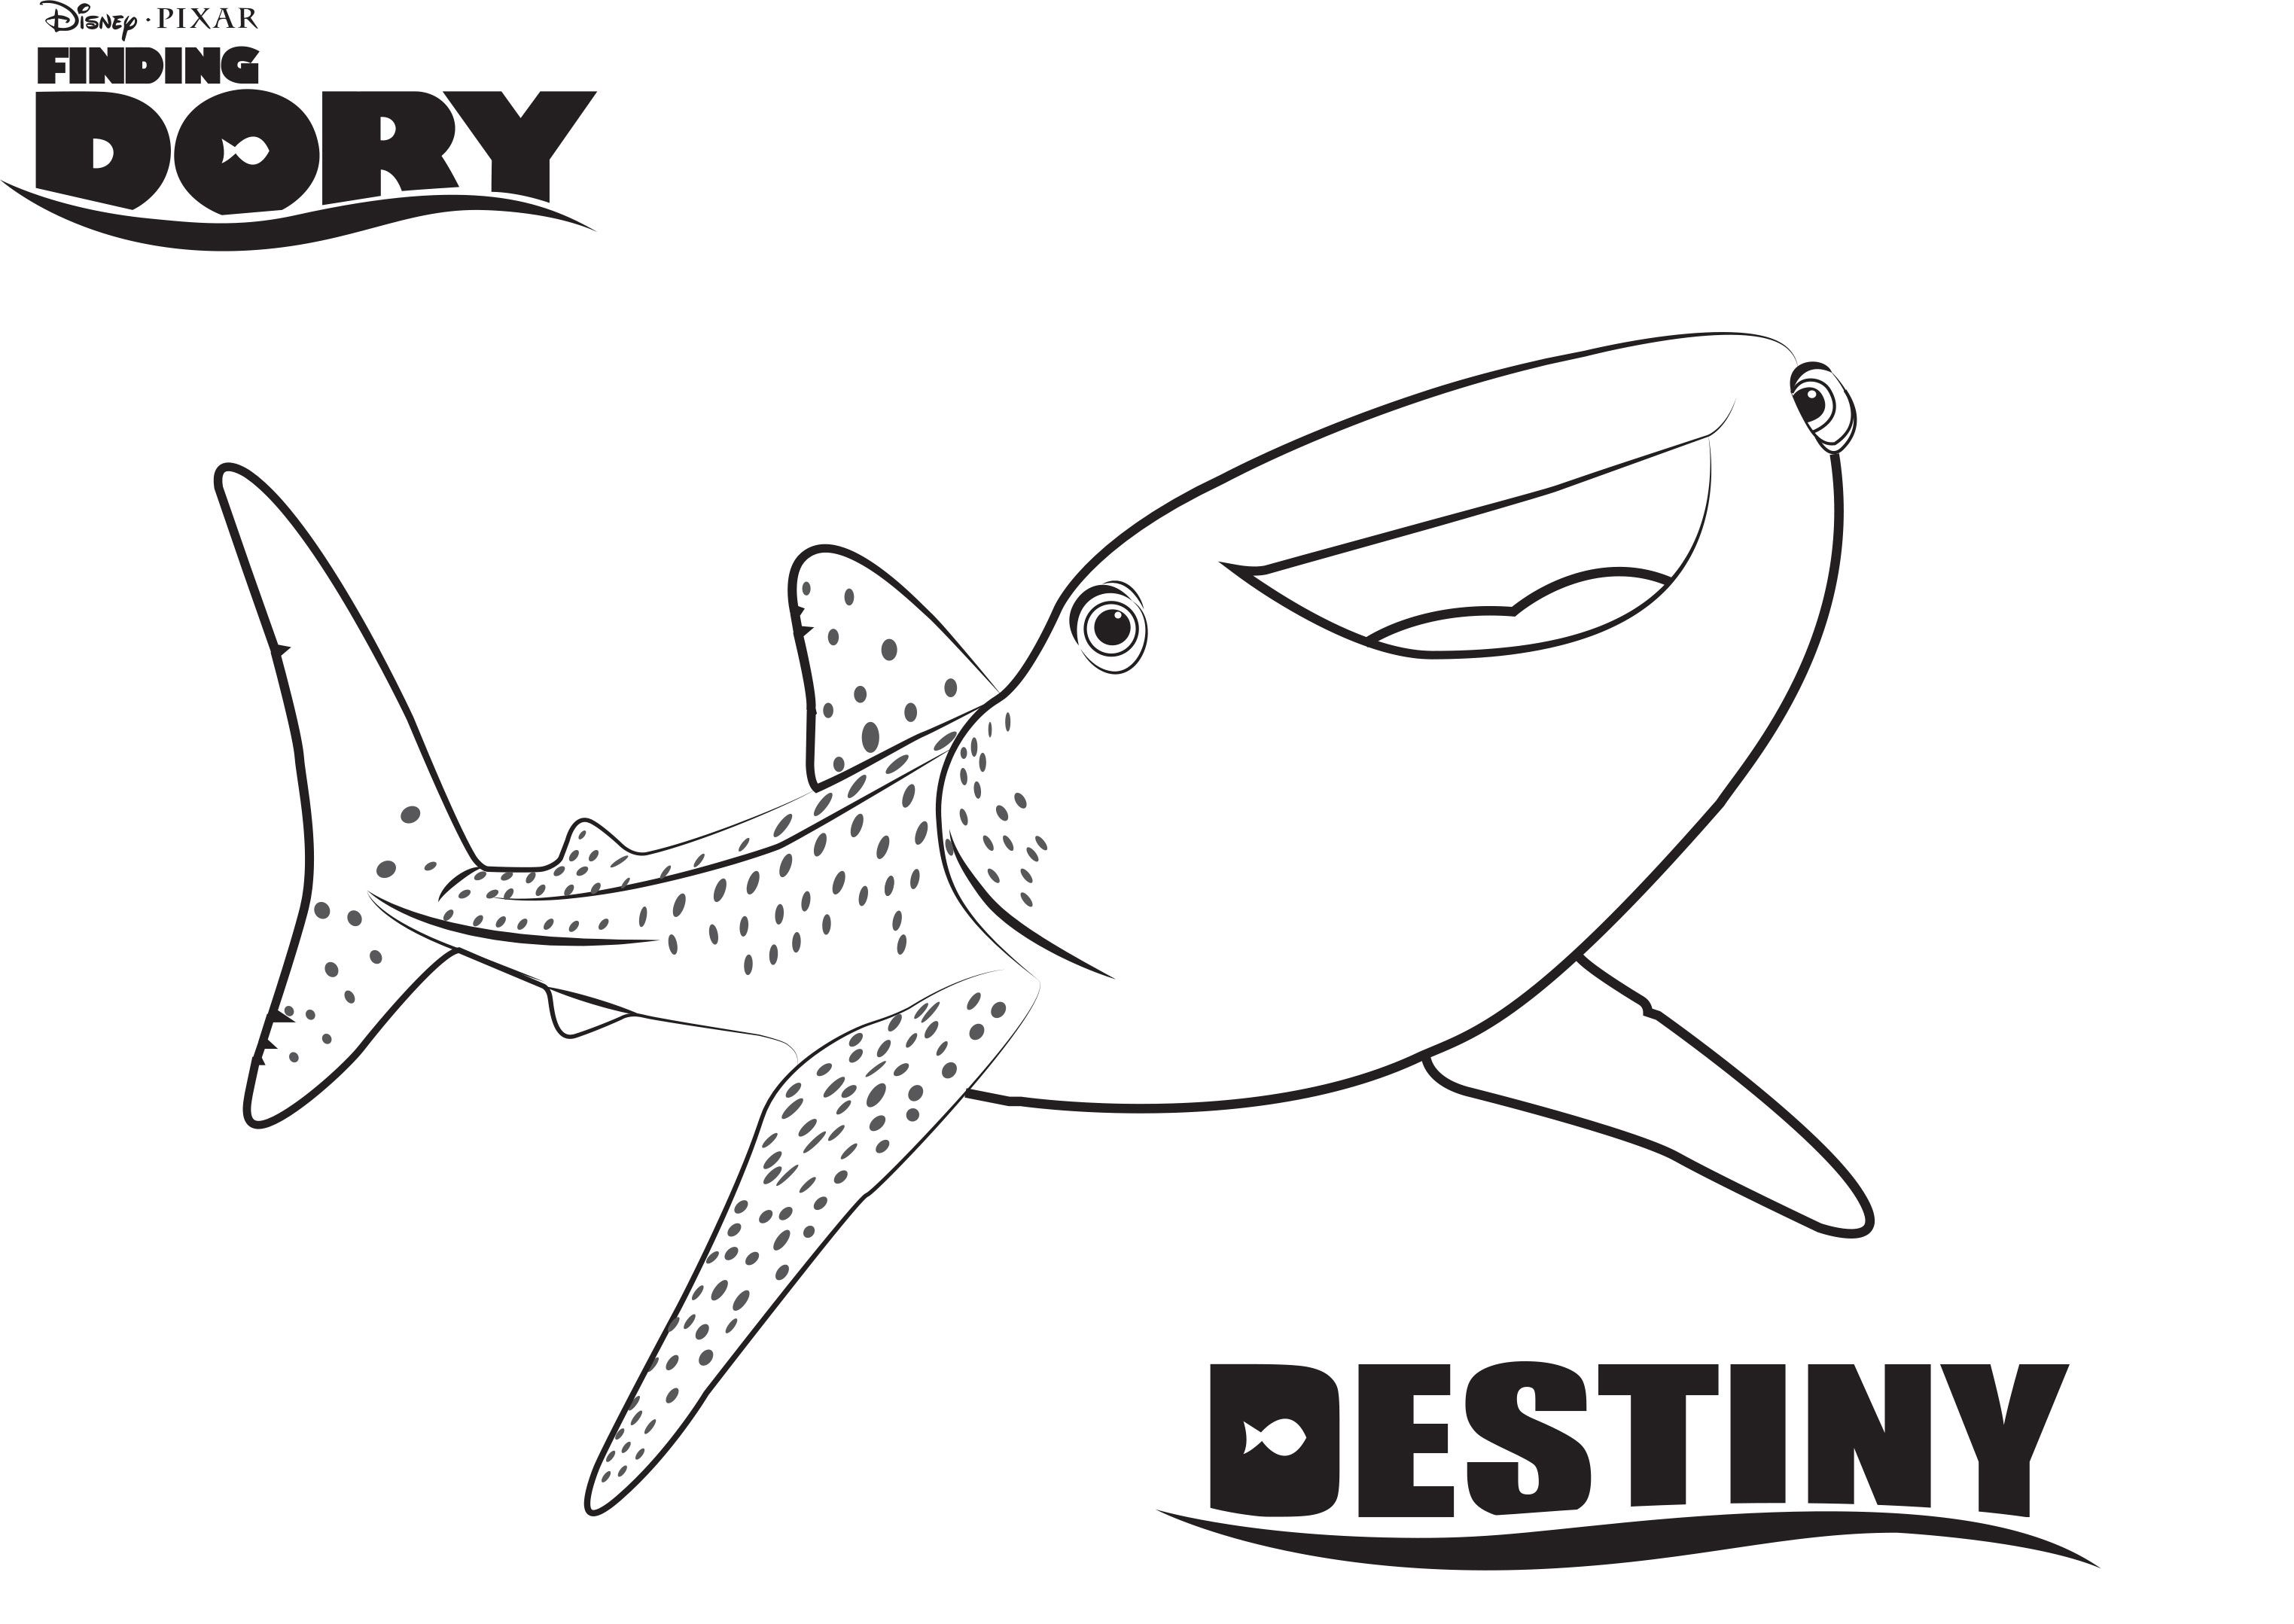 Disney's Finding Dory Coloring Pages Sheet, Free Disney ...